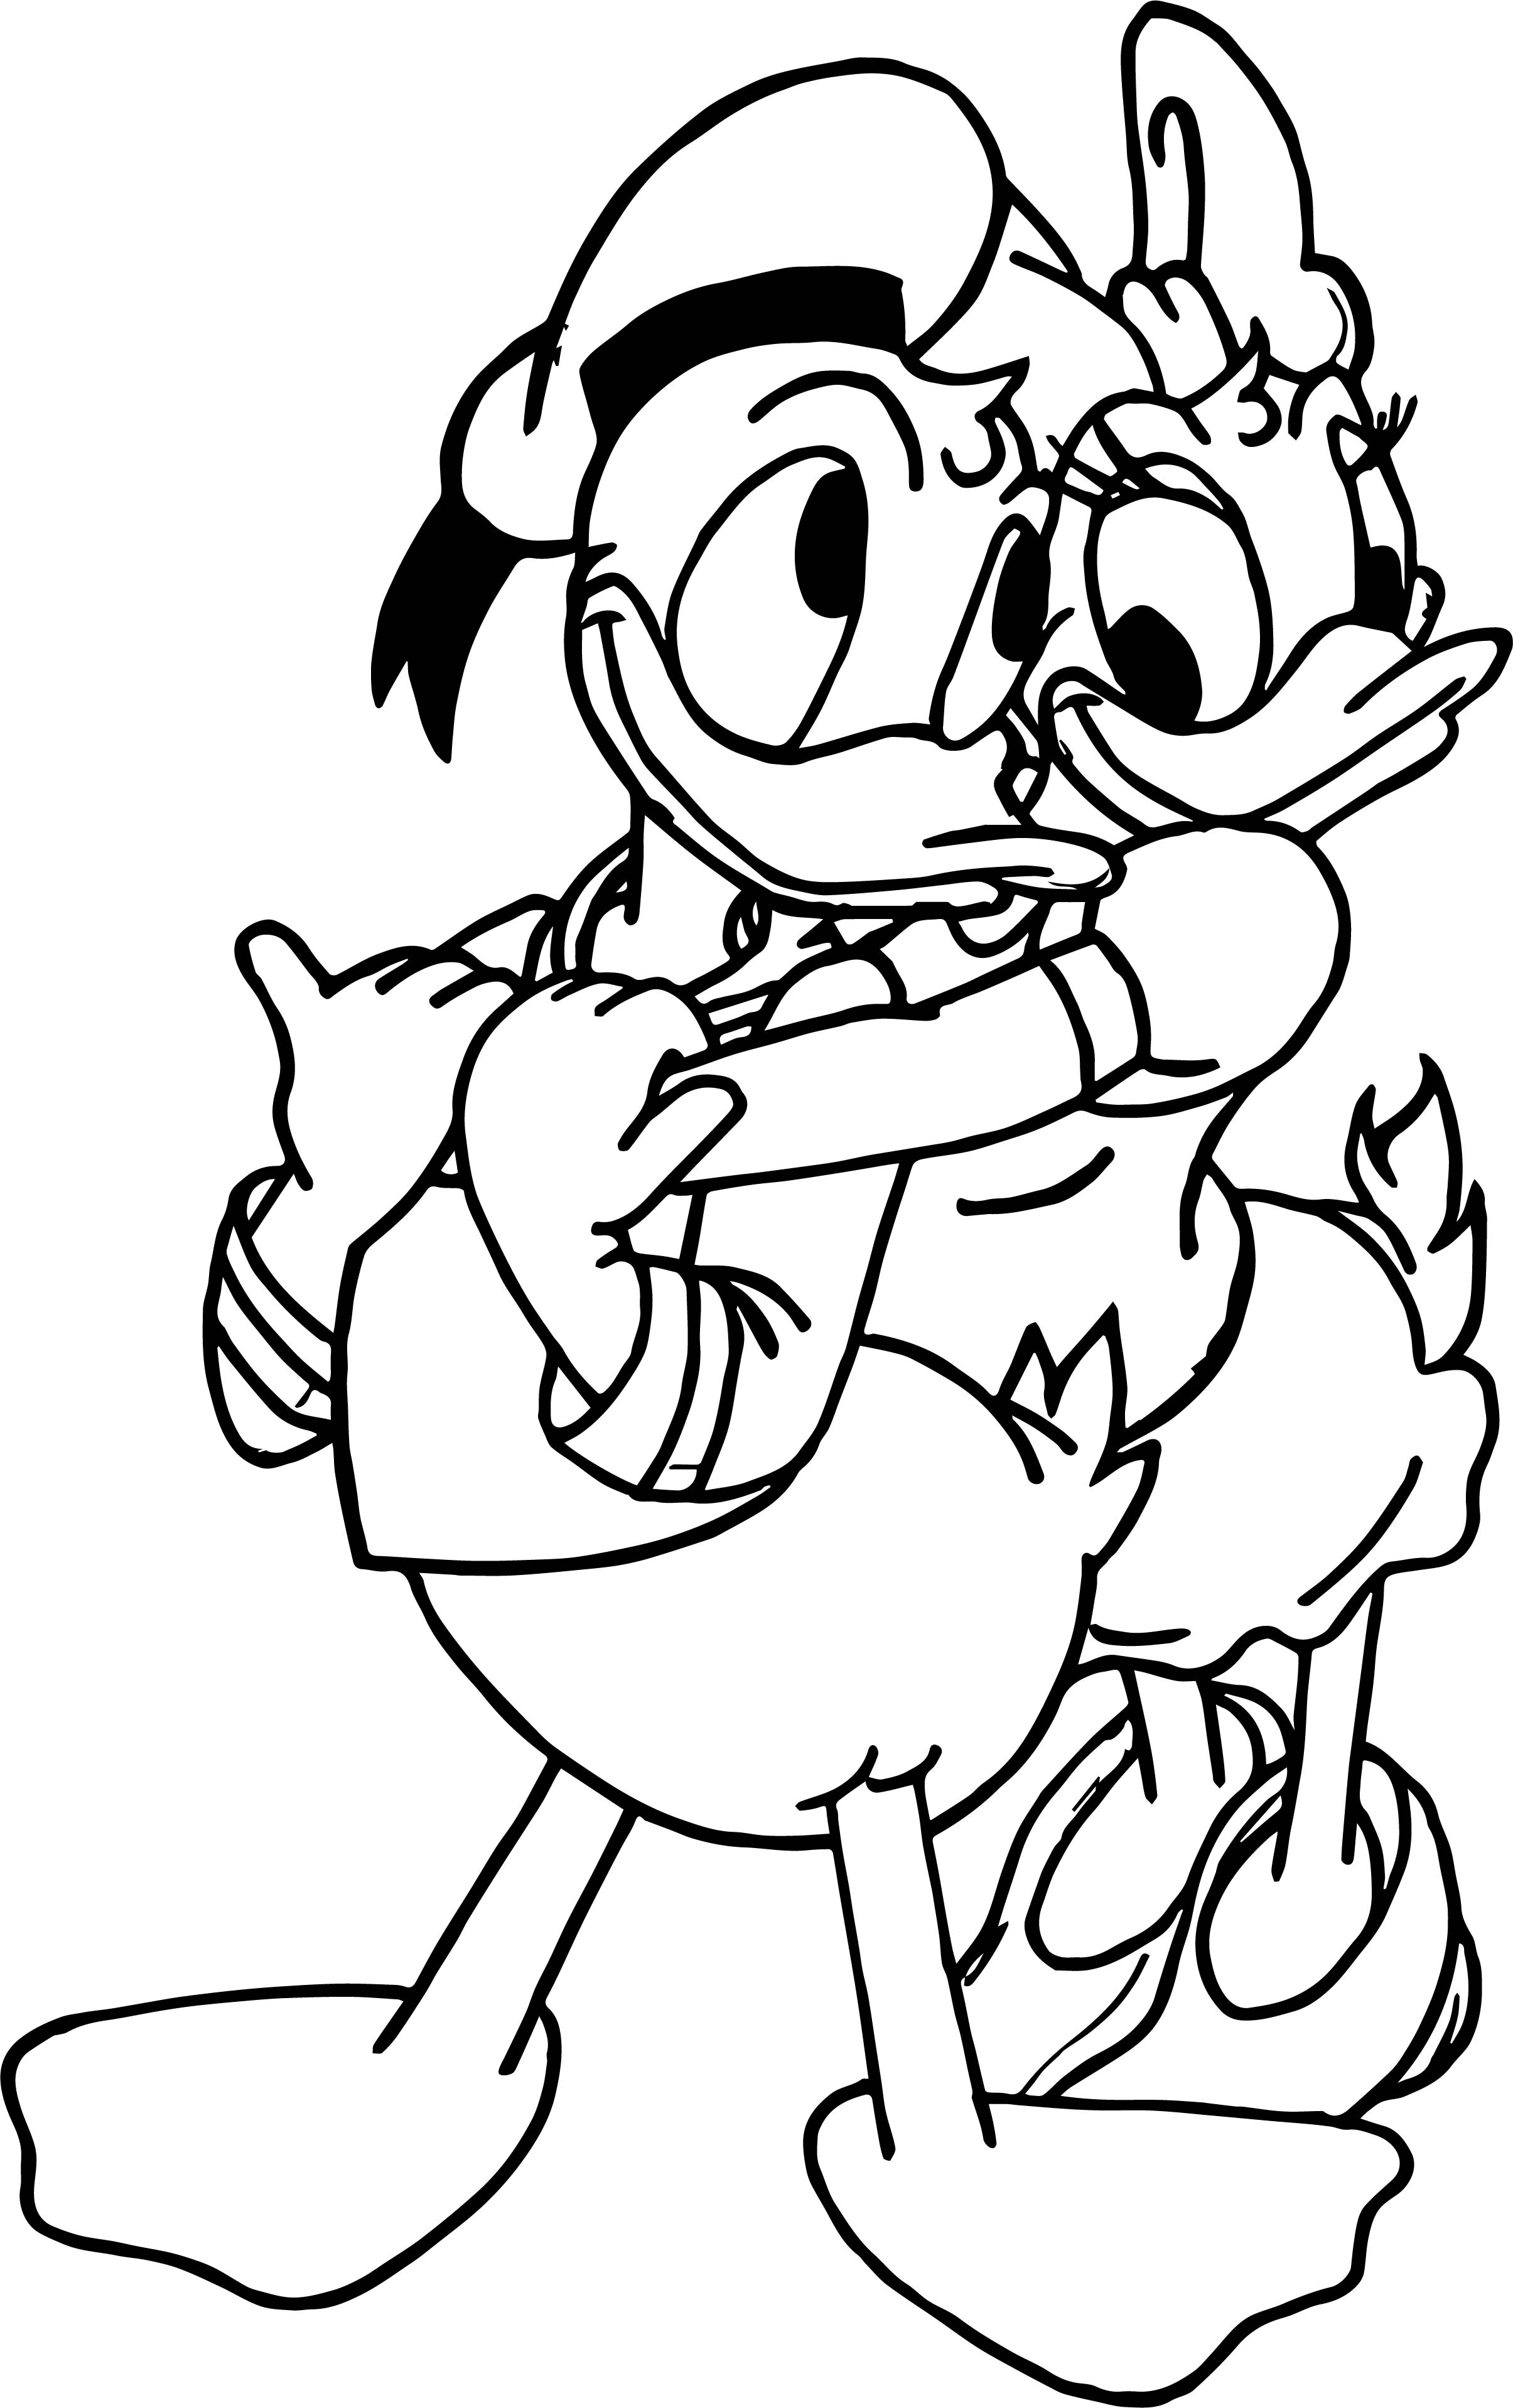 2410x3836 Unique Donald Duck Coloring Pages Collection Printable Coloring